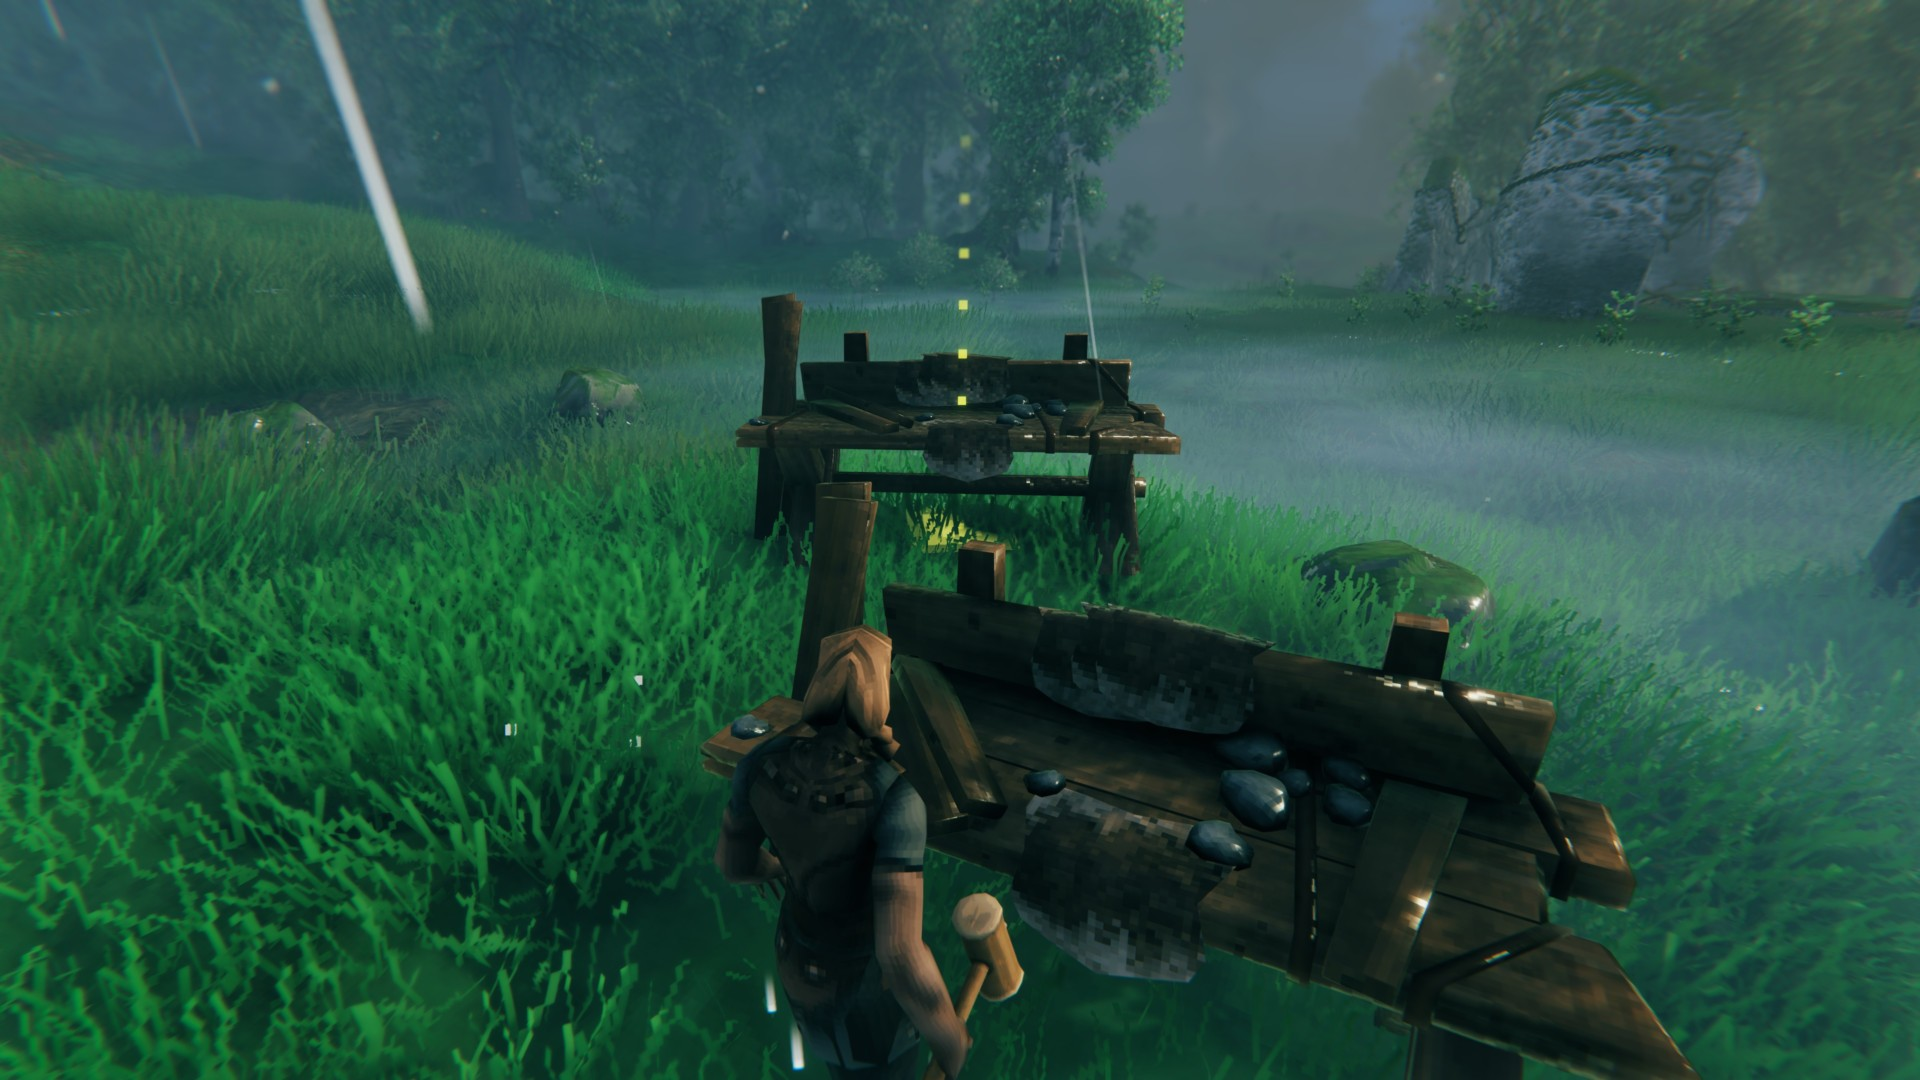 Valheim-crafting-guide-—-Creating-the-Workbench-and-crafting-basics.jpg